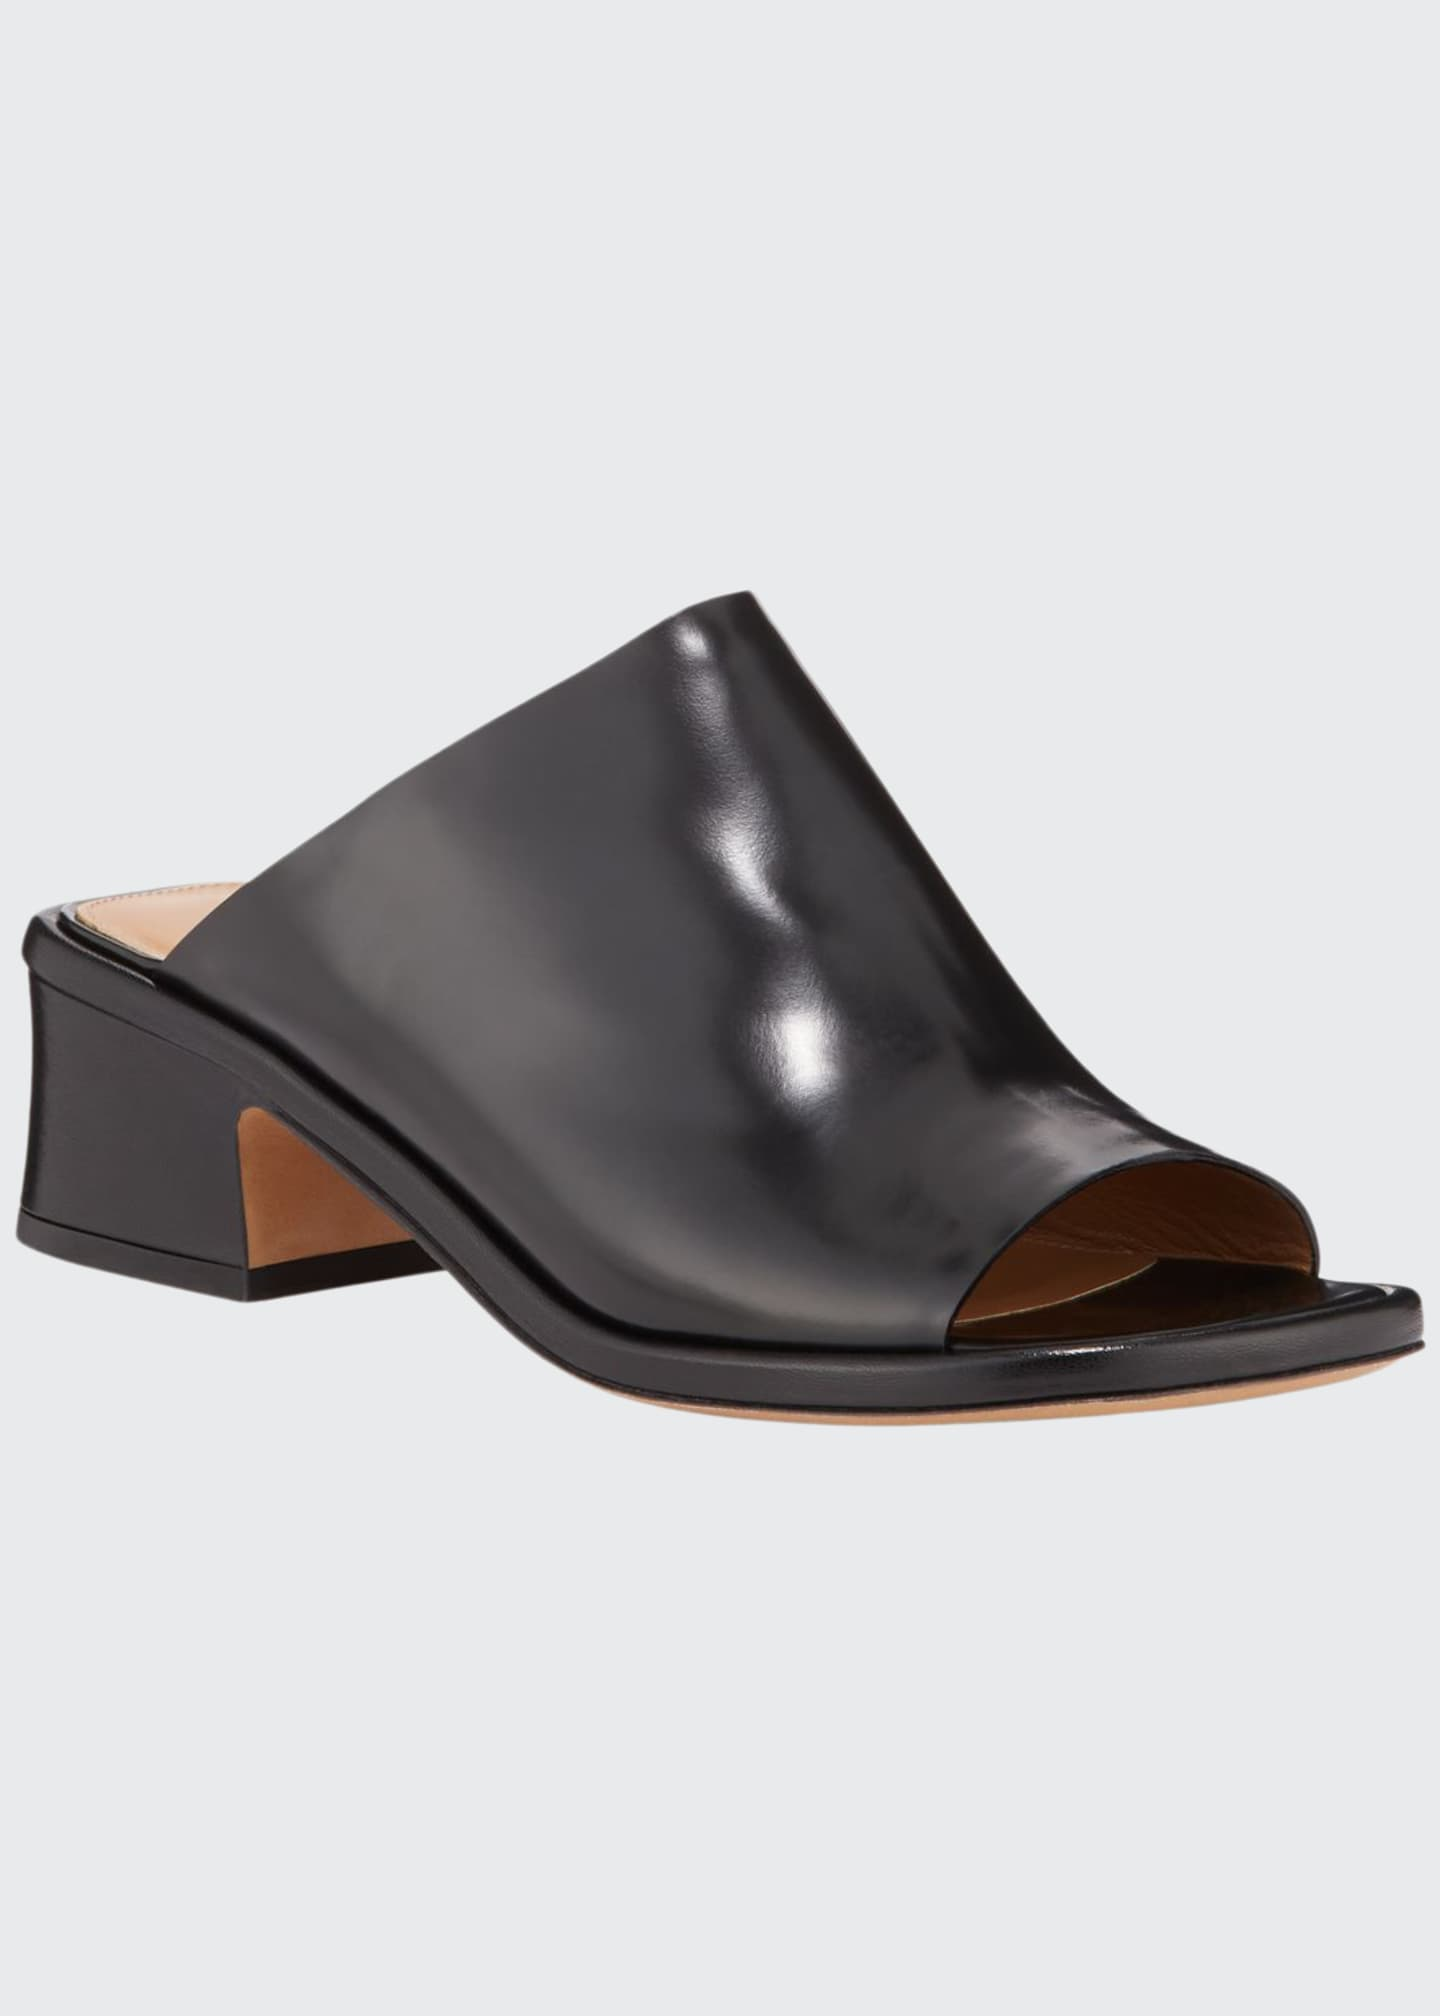 Dries Van Noten Smooth Calf 45mm Mules